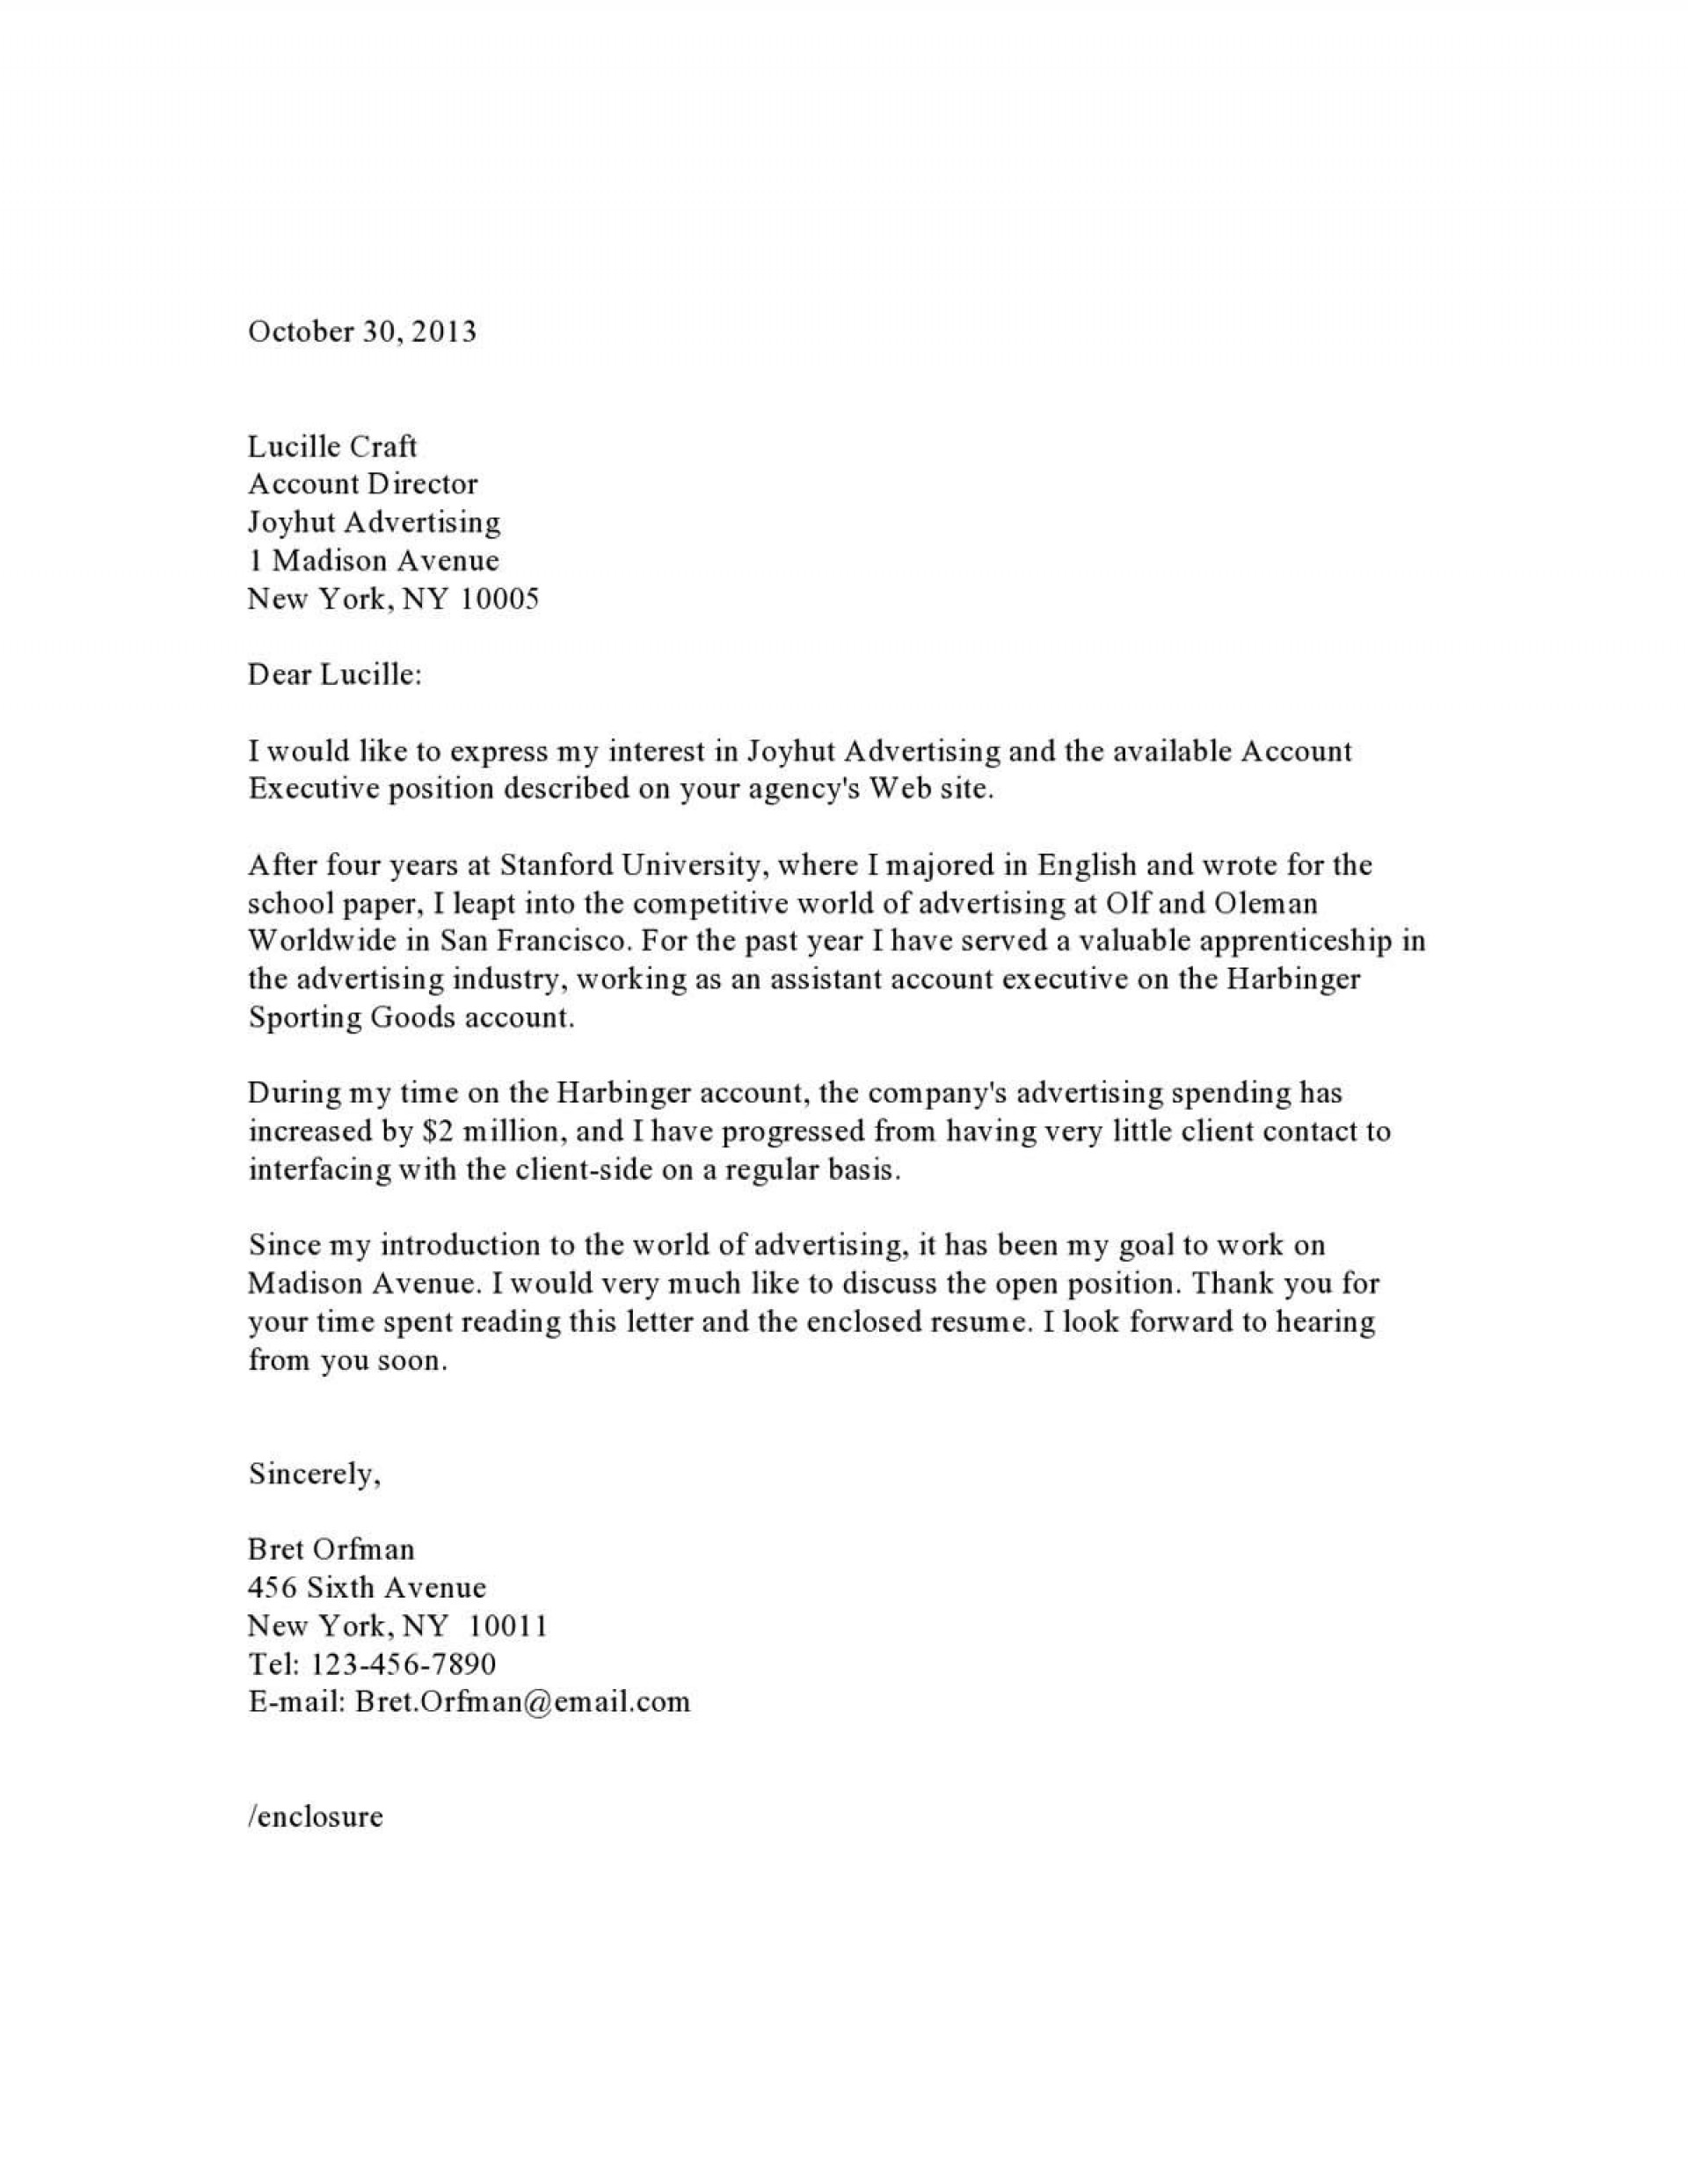 004 Awful Sample Cover Letter Template Picture  For Administrative Assistant Best Job Application Cv1920